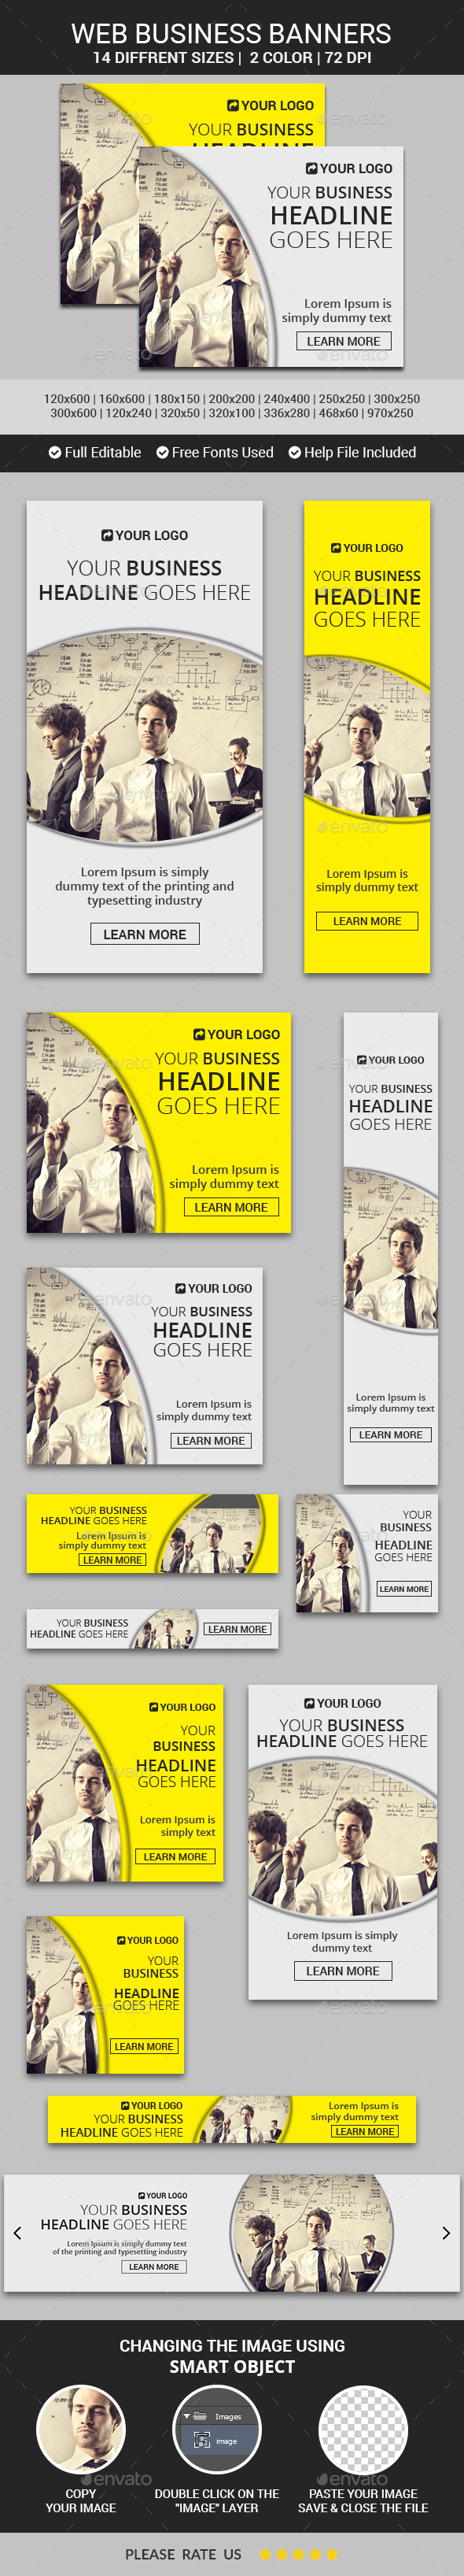 Web Business Banners - Banners & Ads Web Elements